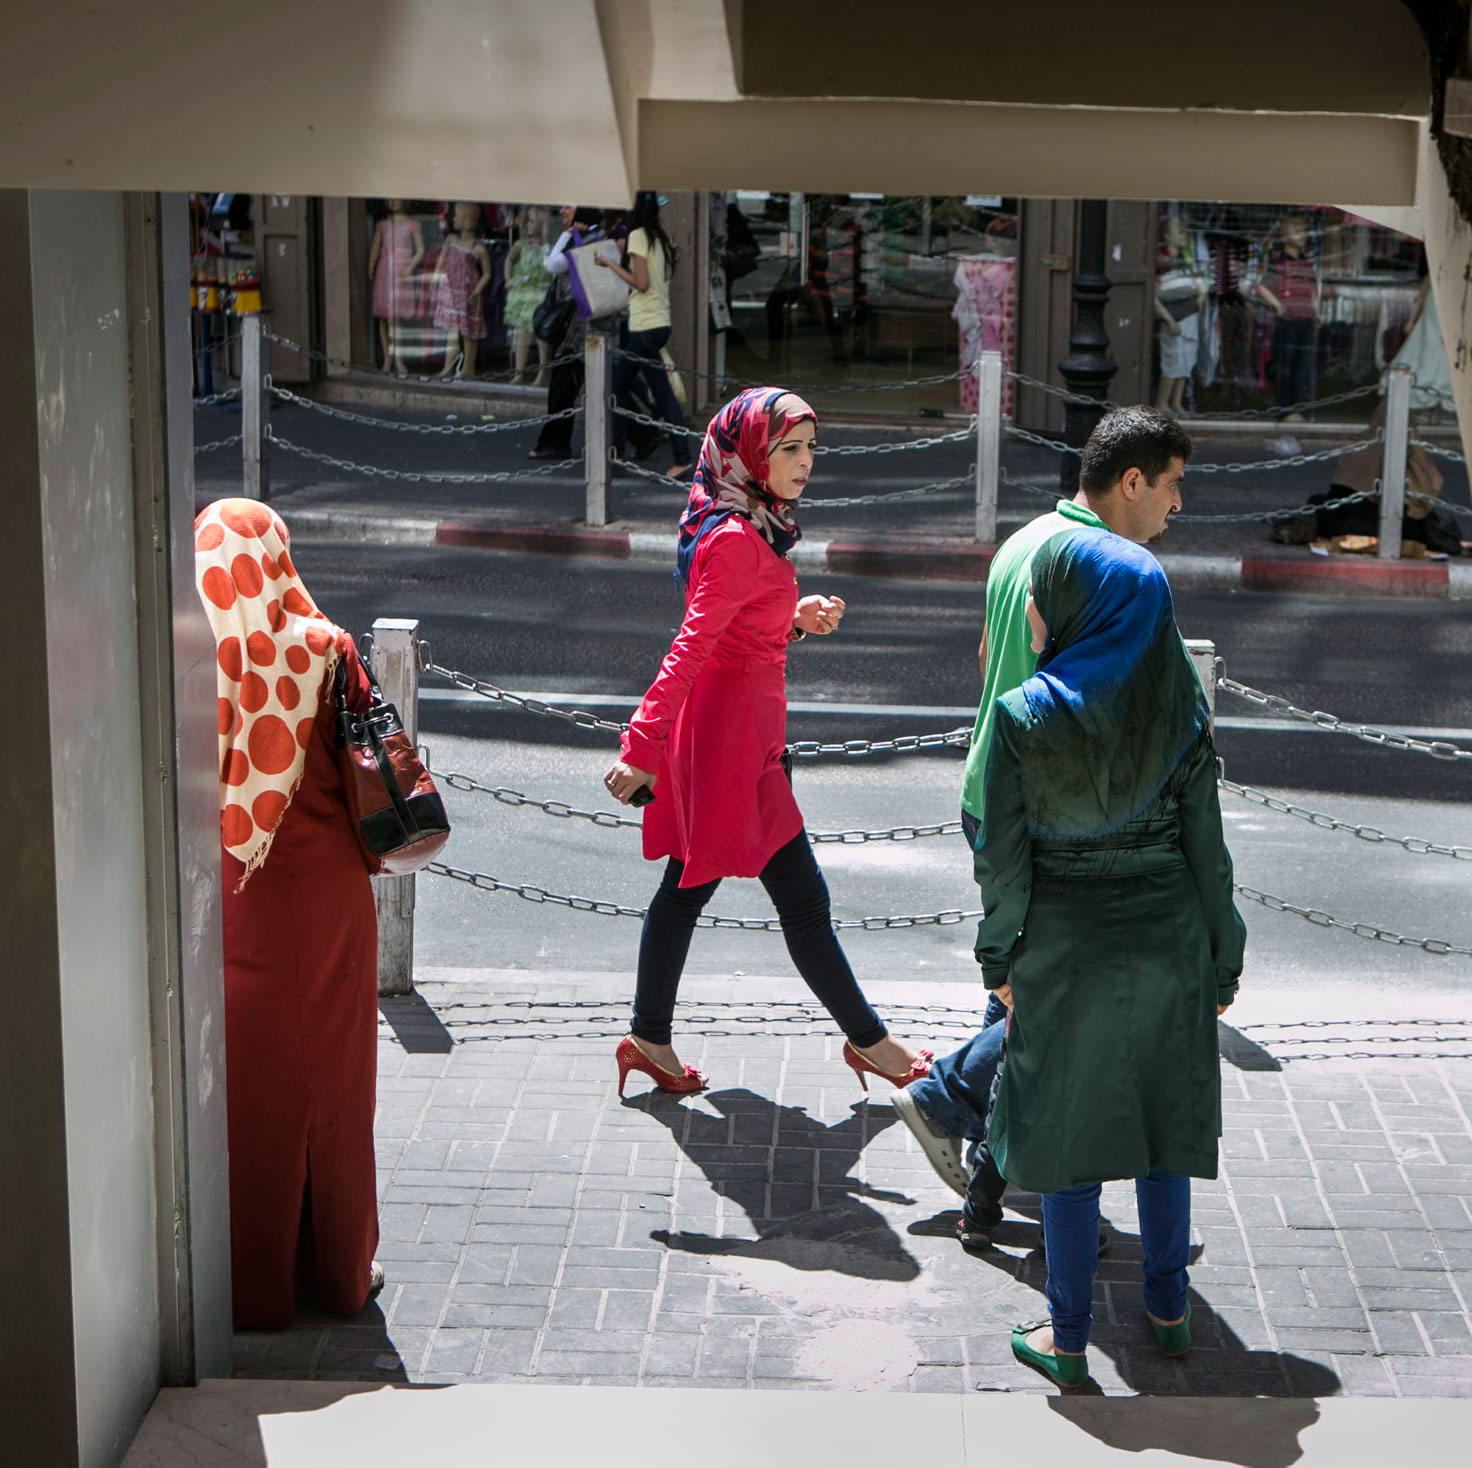 Hijab fashion in Egypt: A lot more than meets the eye ...